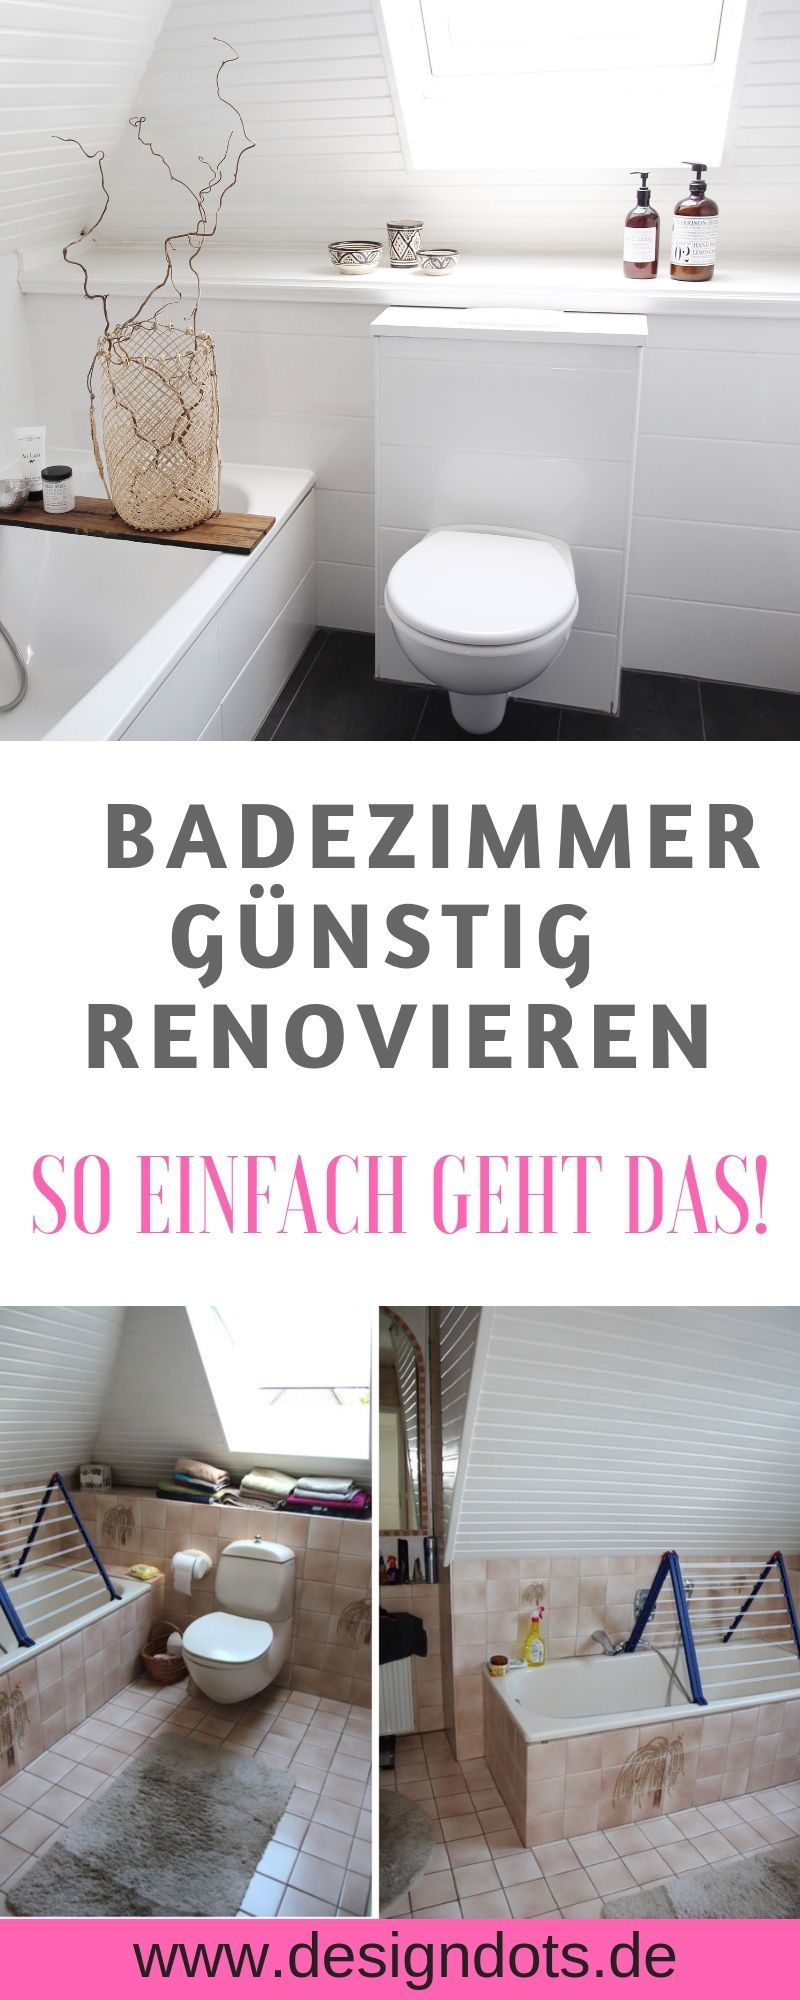 Badezimmer Selbst Renovieren In 2020 Amazing Life Hacks Toilet Home Decor